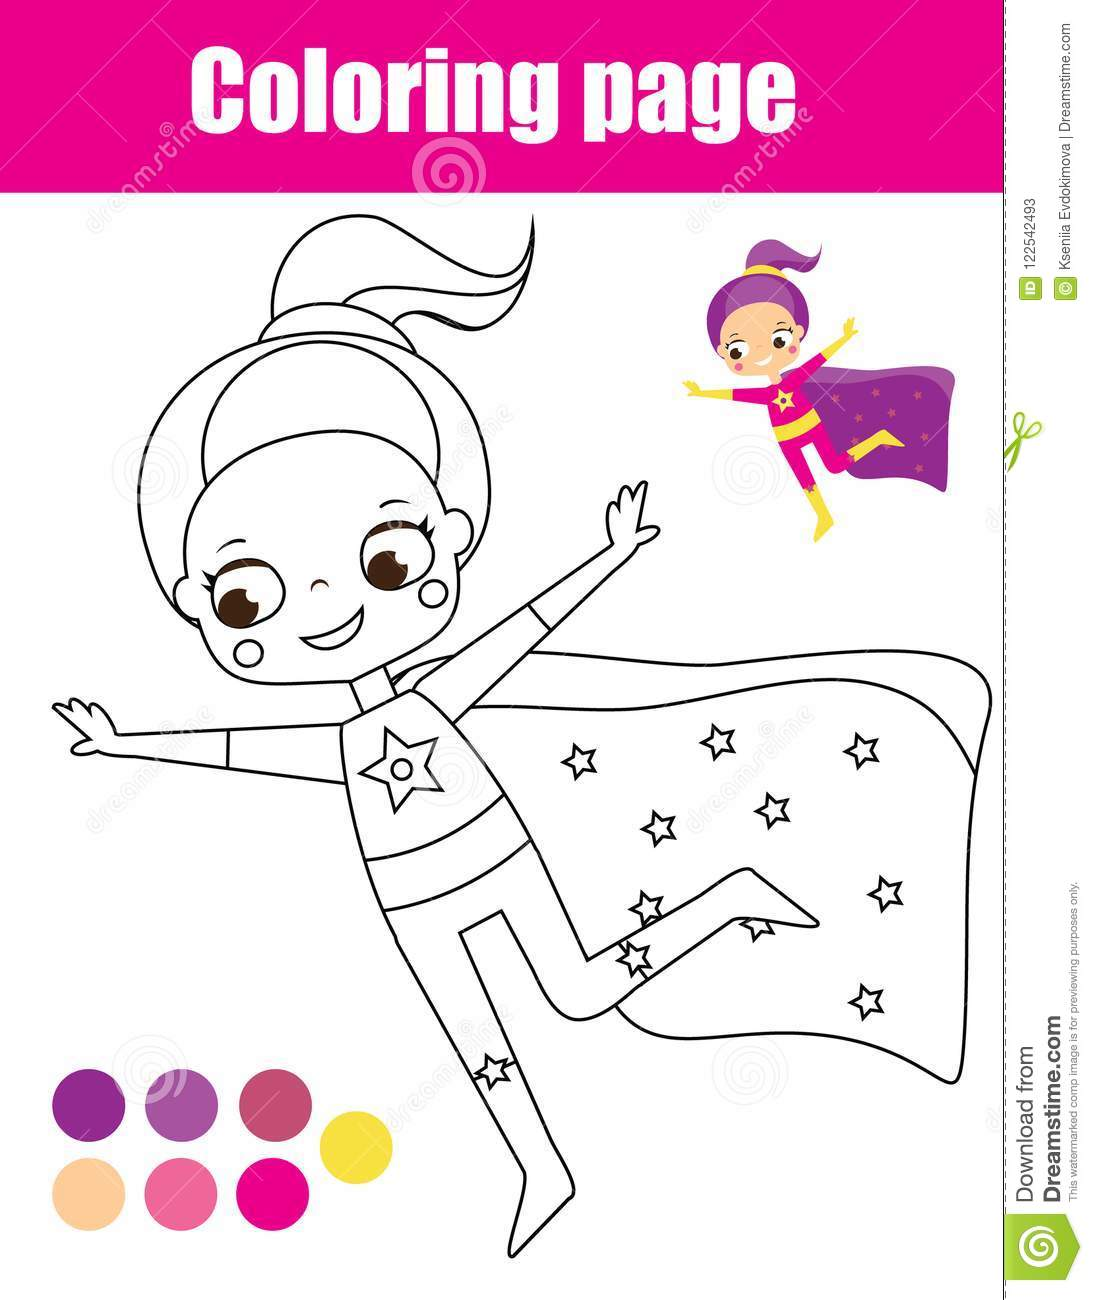 photograph relating to Printable Kid Activity called Coloring Website page With Superhero Woman. Drawing Little ones Sport